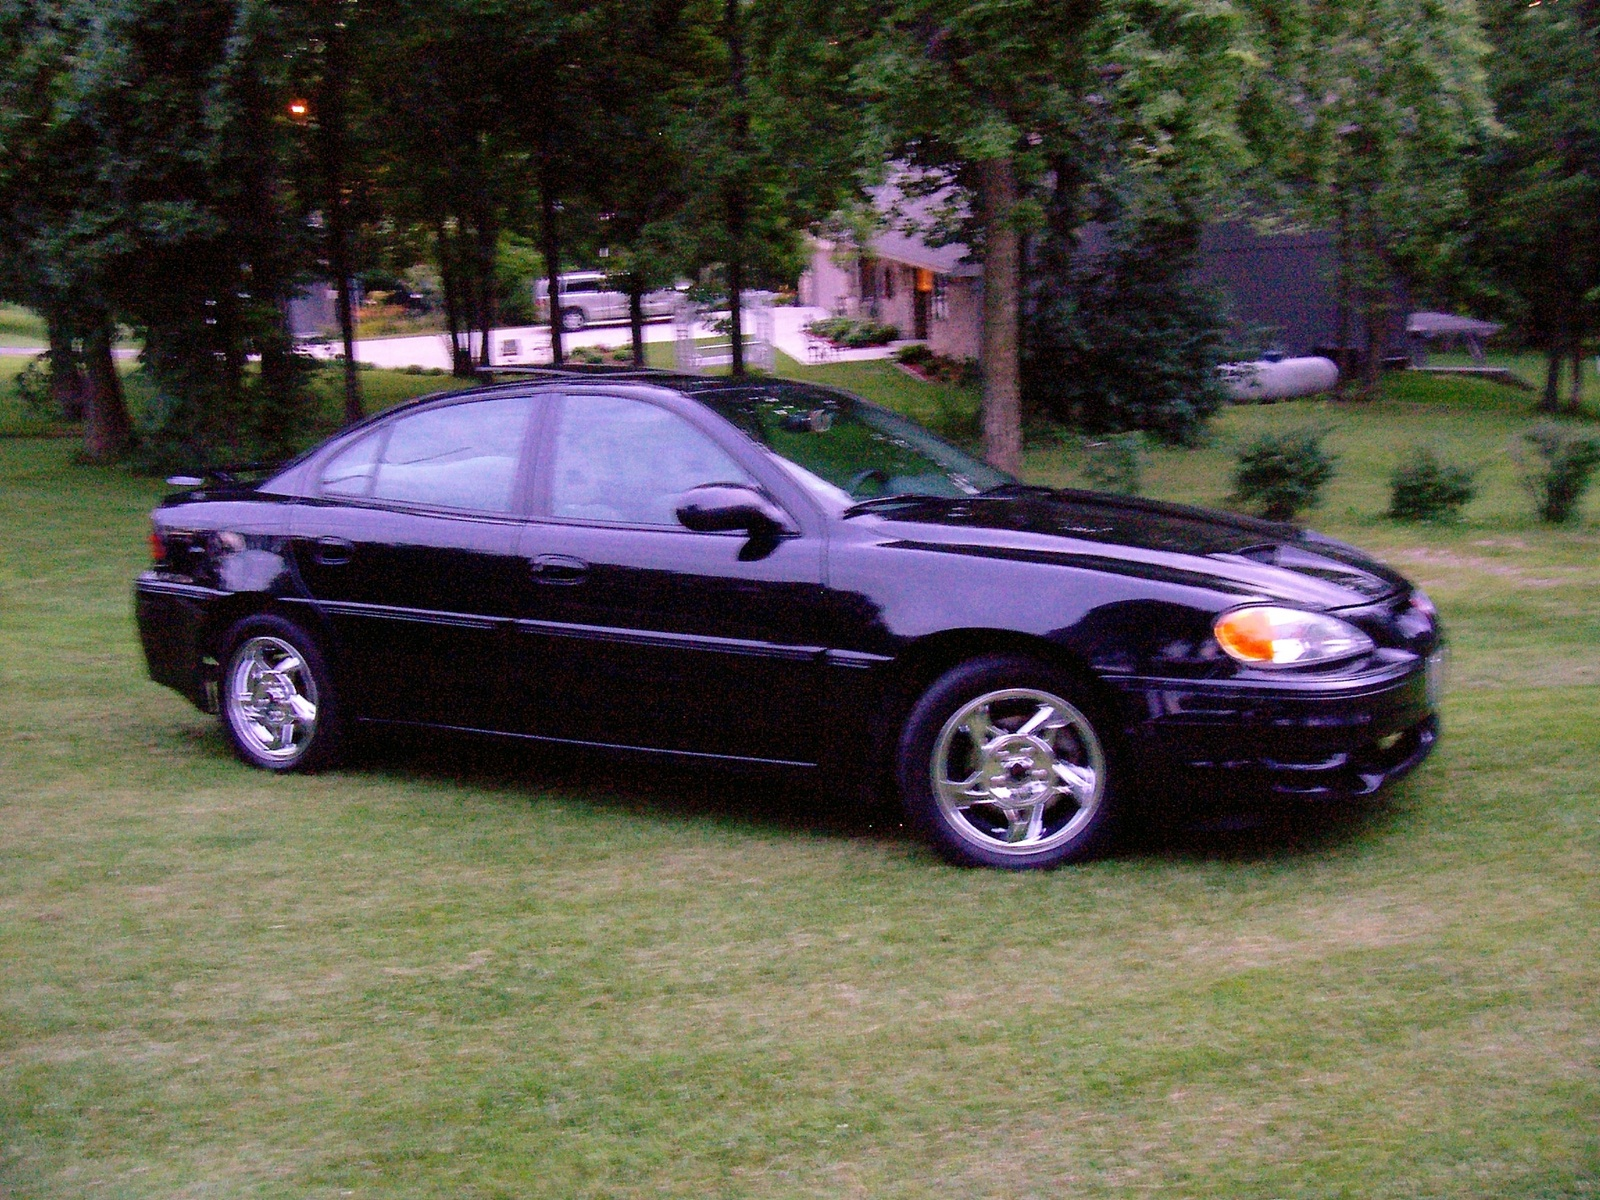 2004 Pontiac Grand Am GT1 - Pictures - 2004 Pontiac Grand Am GT1 pict ...